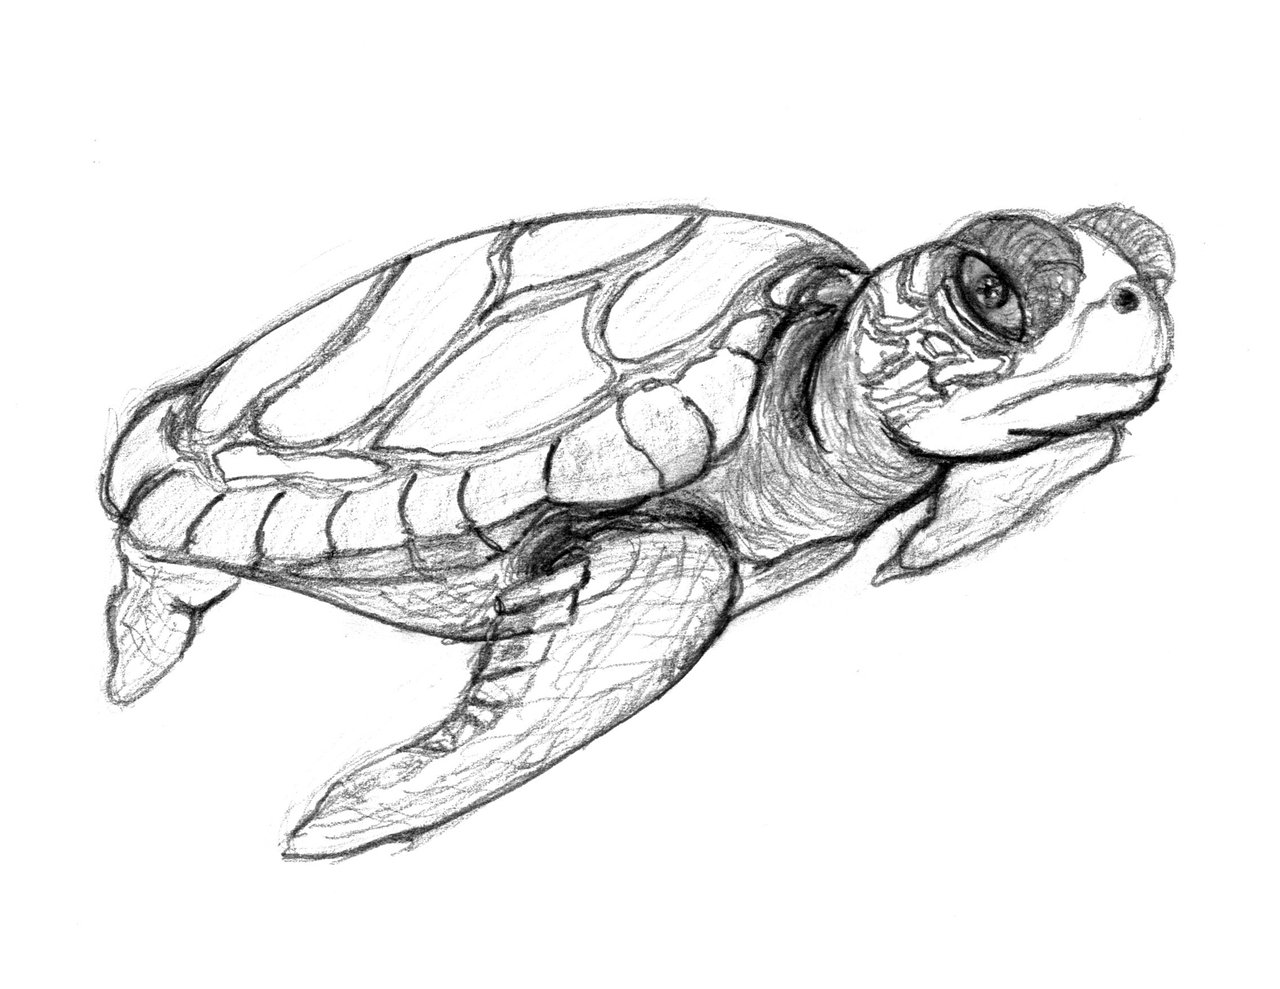 1280x989 Turtle Sketches Drawing